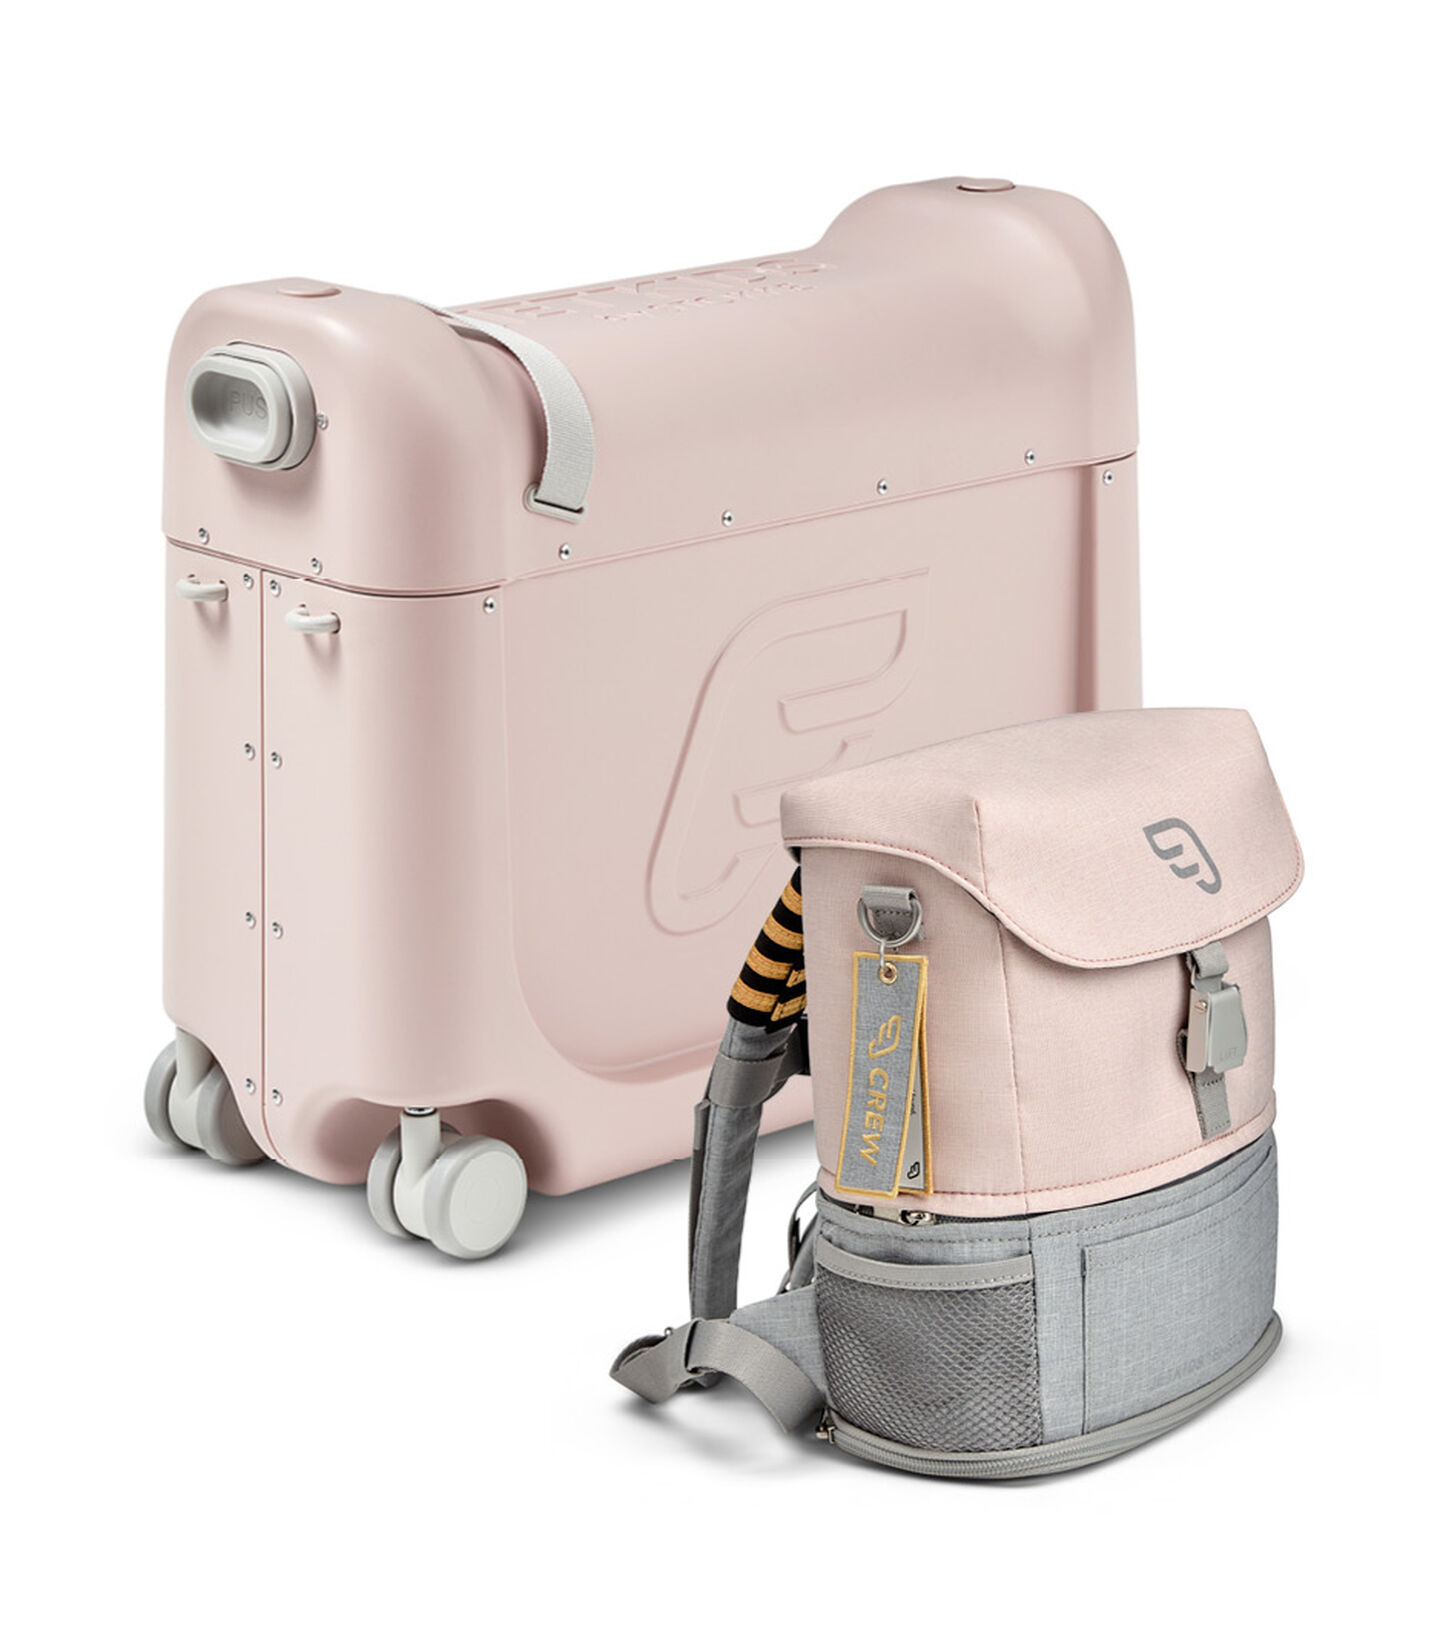 BedBox™ + Crew BackPack™-Reiseset Pink/Pink, Pink / Pink, mainview view 2